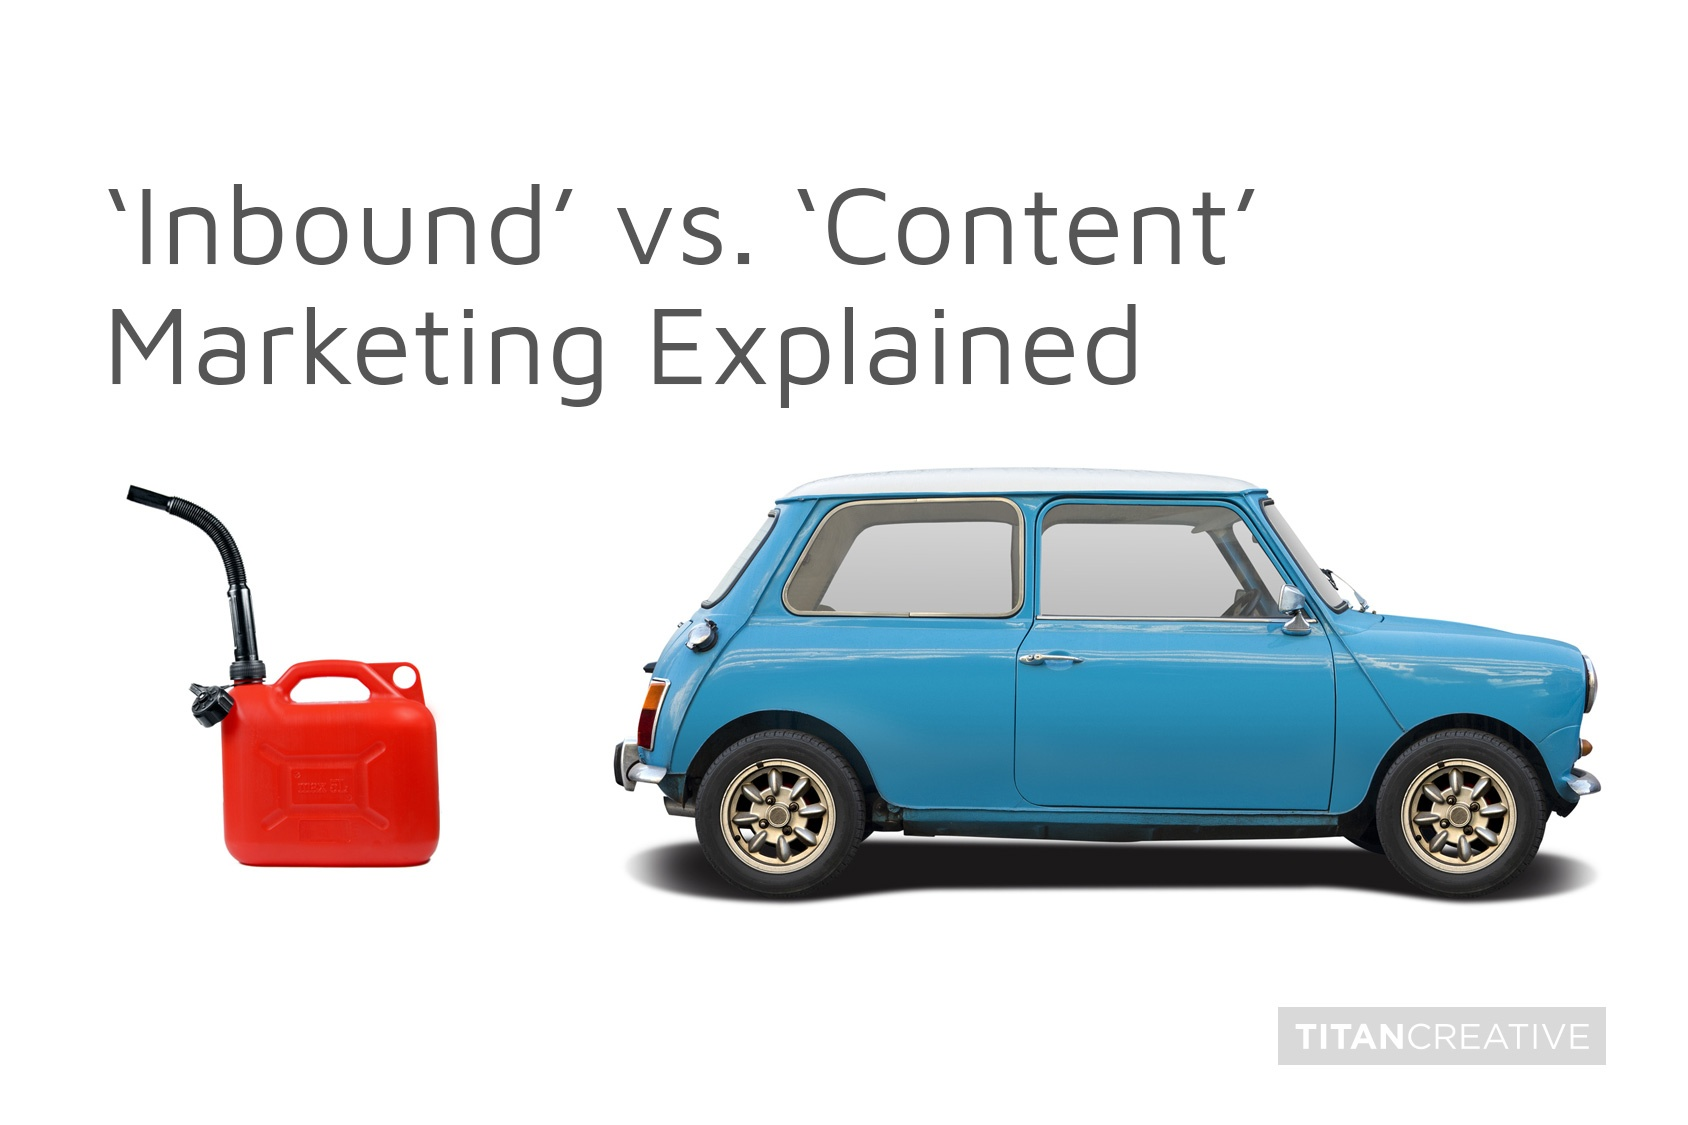 What is the difference between Inbound and Content Marketing?